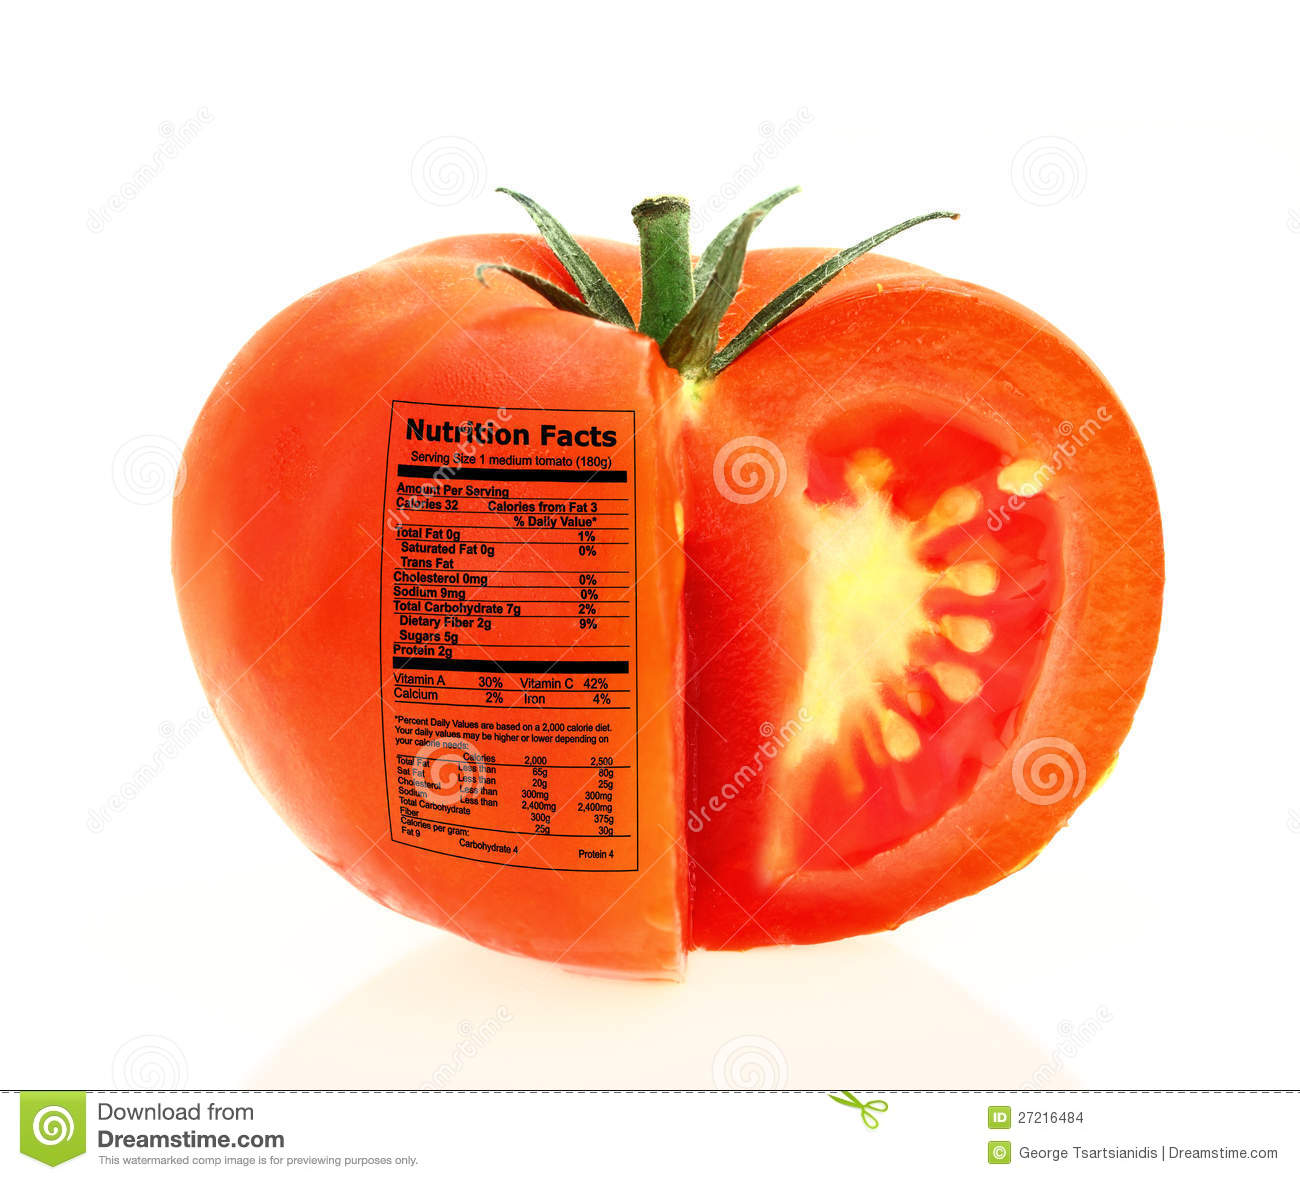 How many calories are in tomatoes